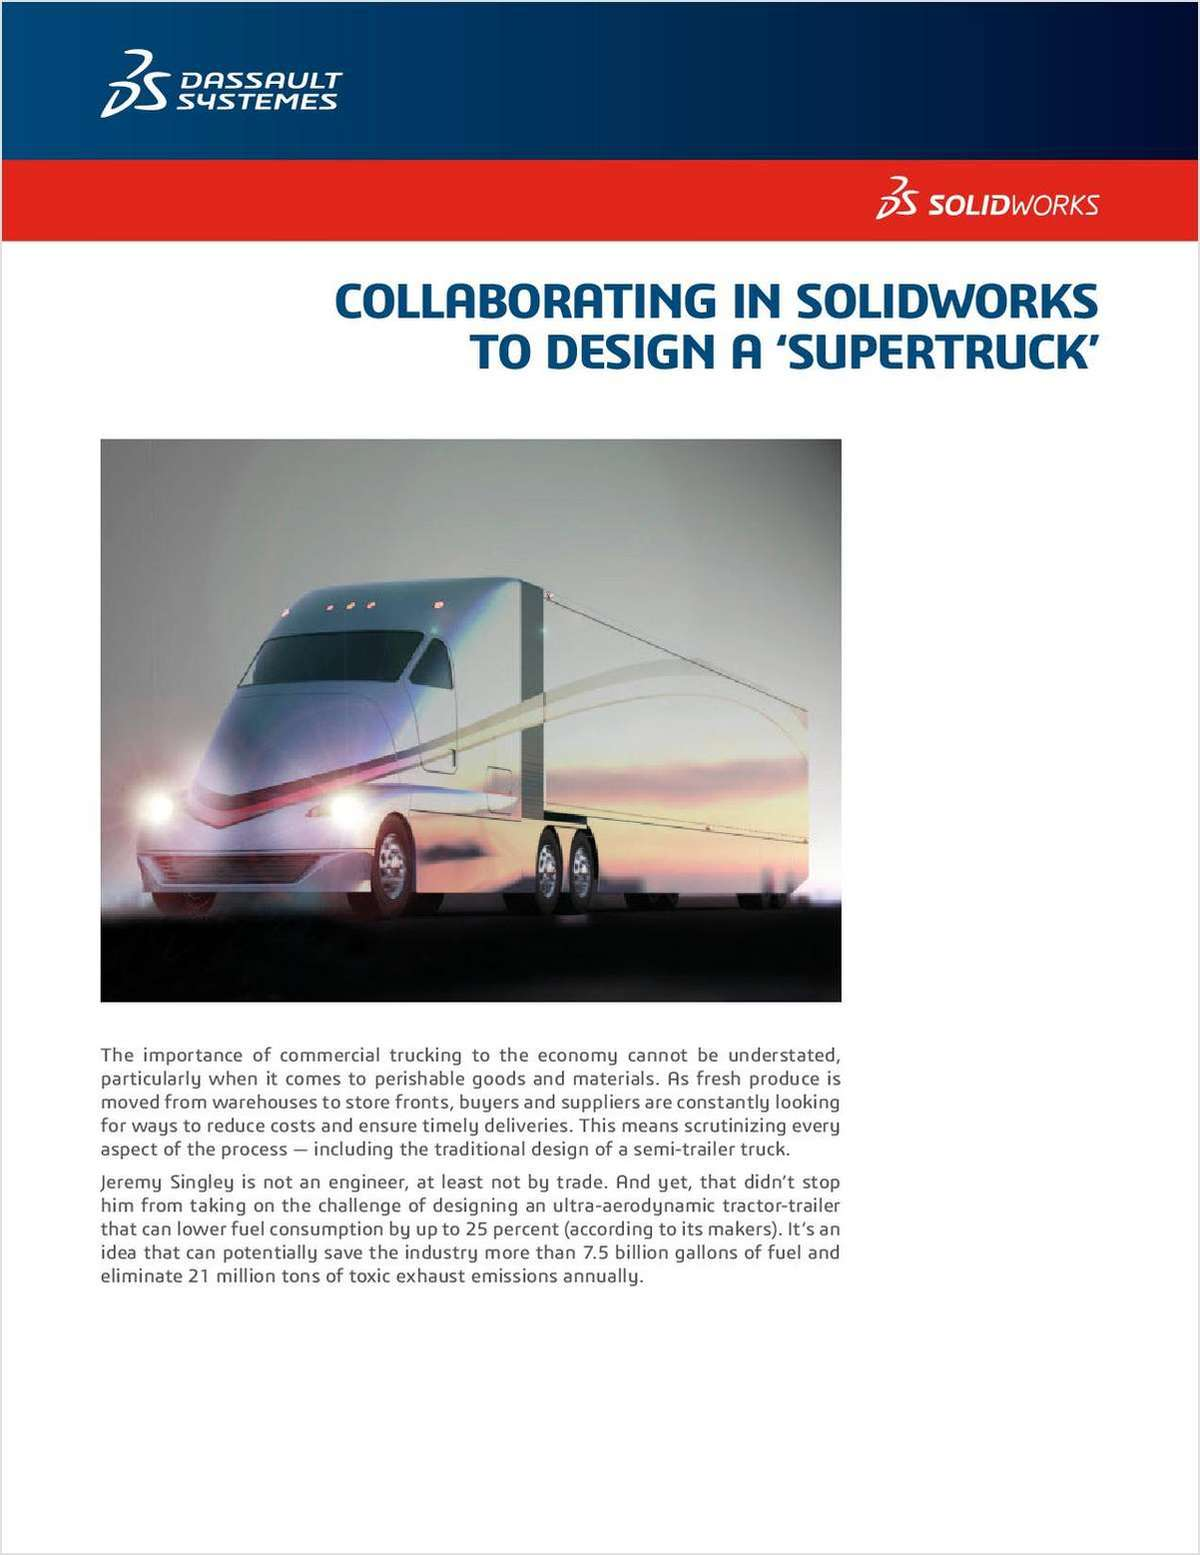 SOLIDWORKS® Helps Revolutionize Commercial Trucking